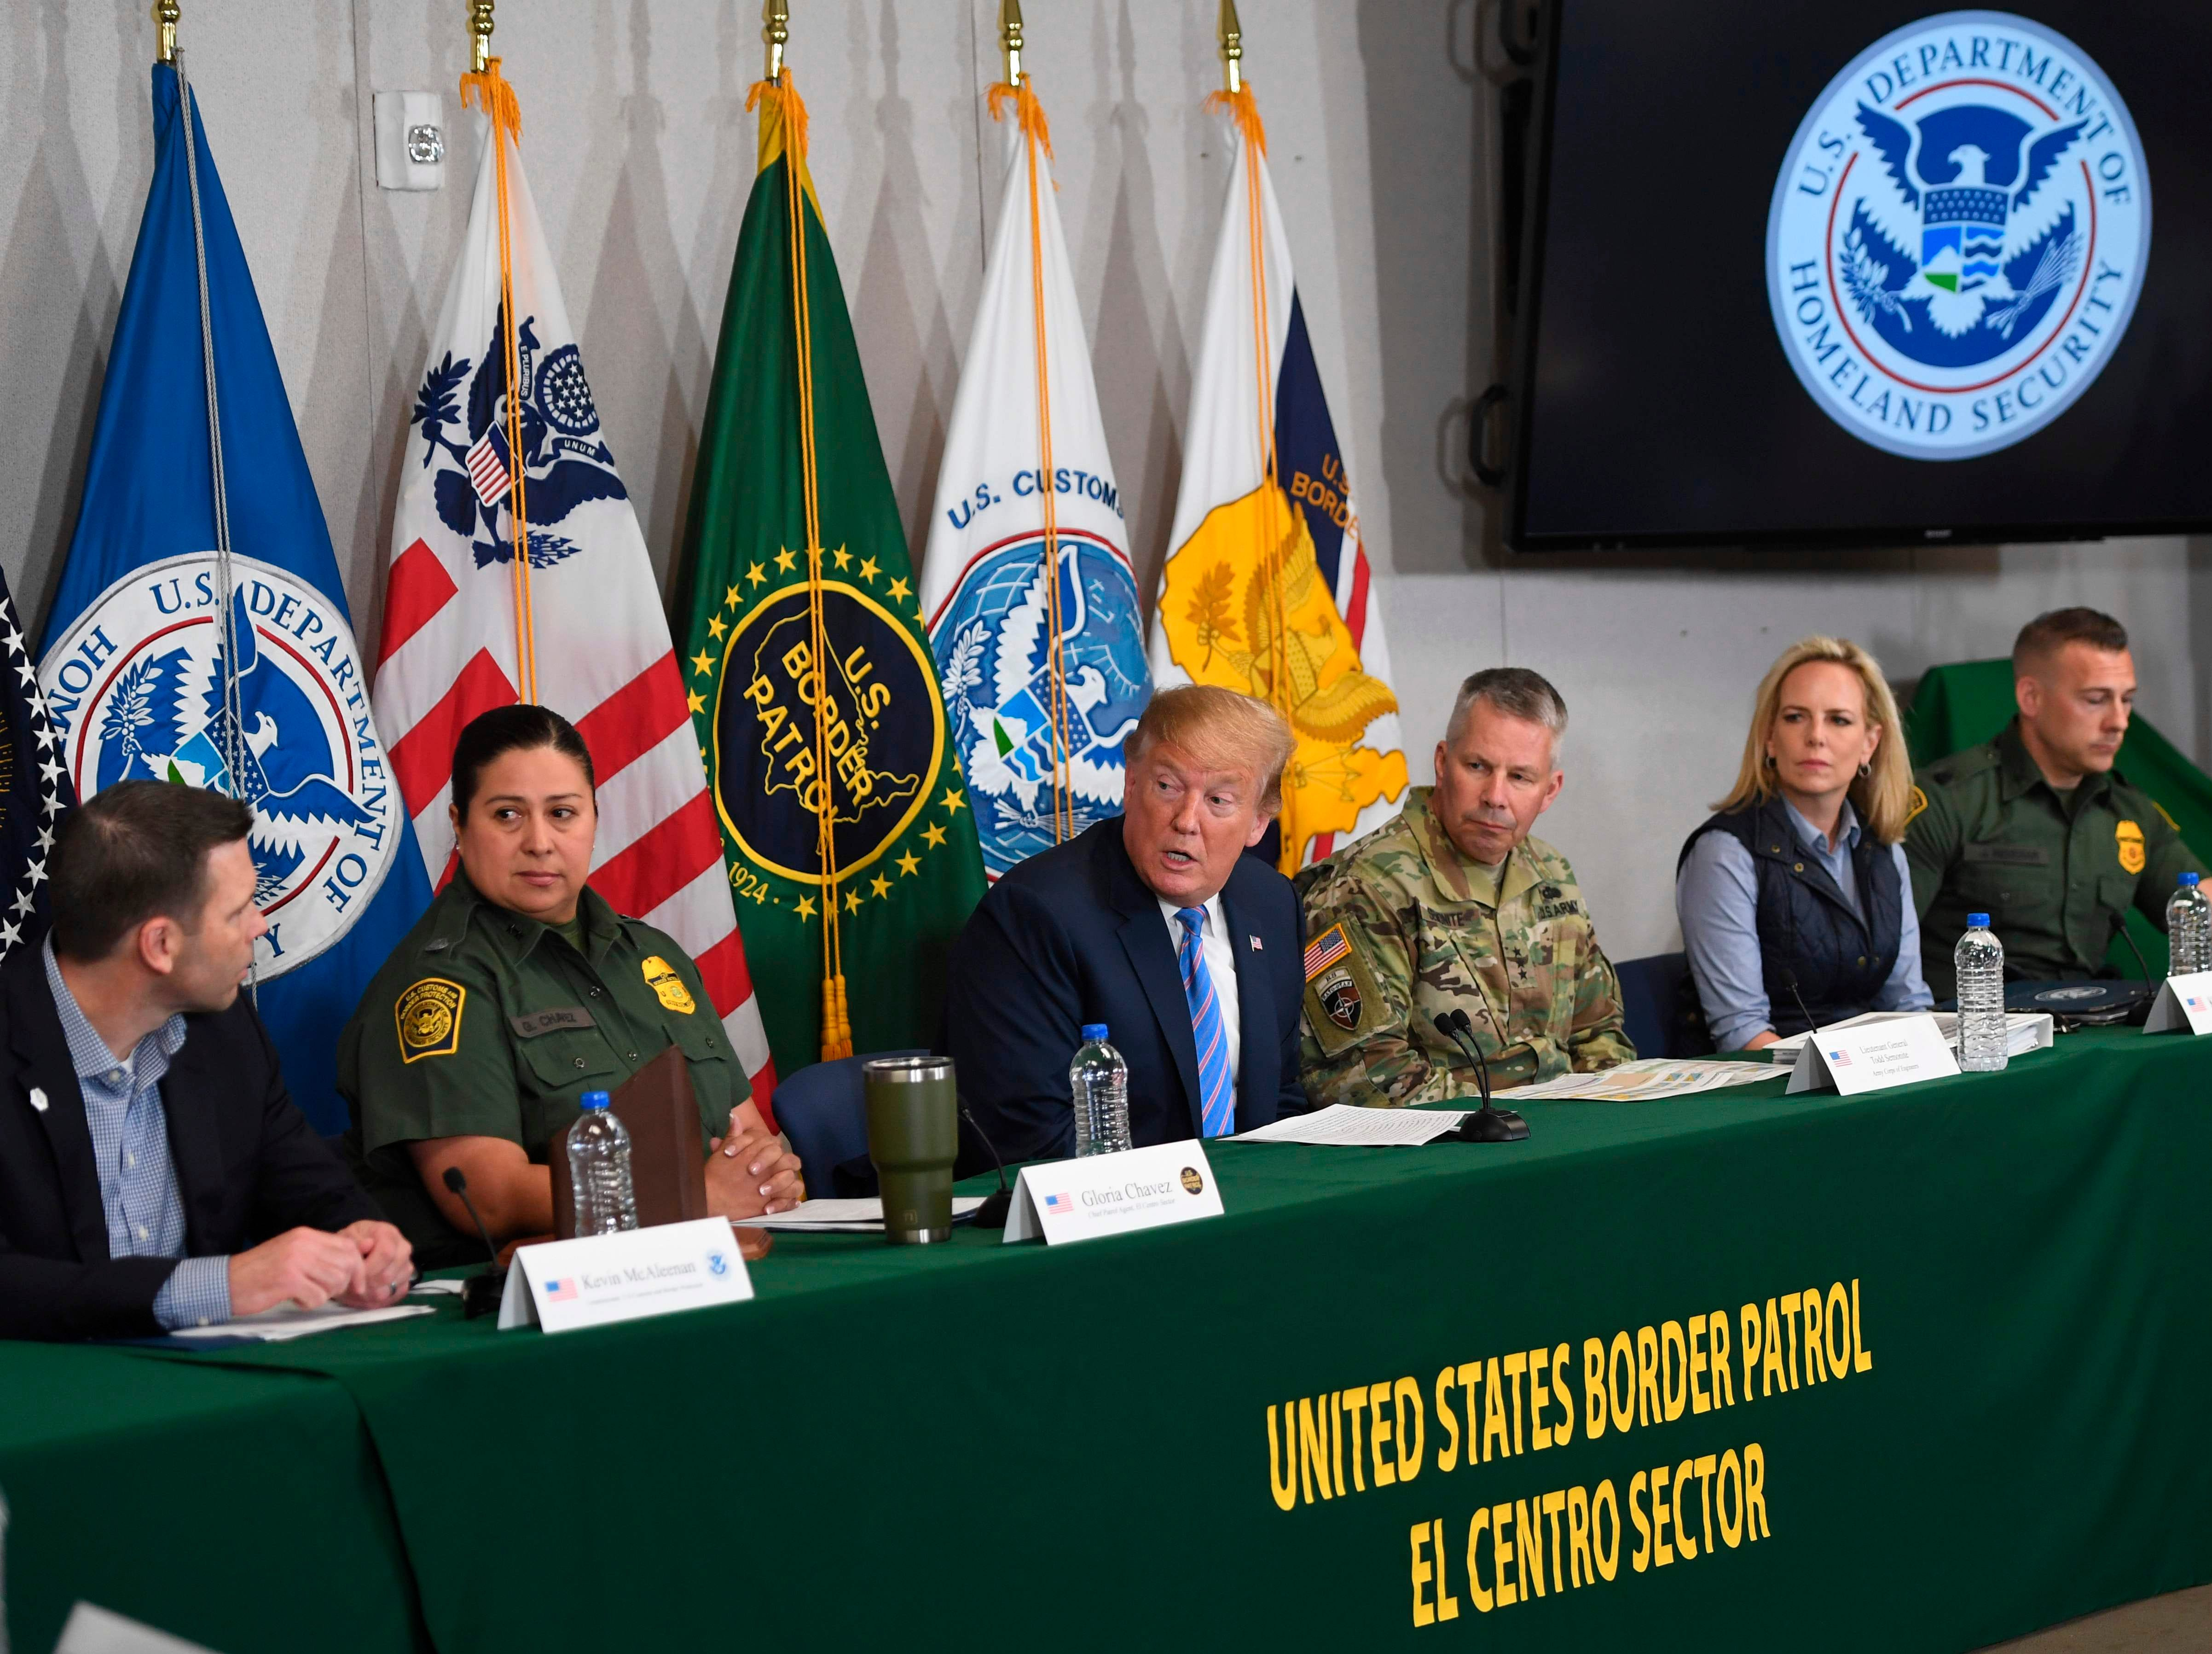 President Donald Trump speaks with members of the Border Patrol as US Secretary of Homeland Security Kirstjen Nielsen, second from right, looks on during a press conference in Calexico, Calif., April 5, 2019.